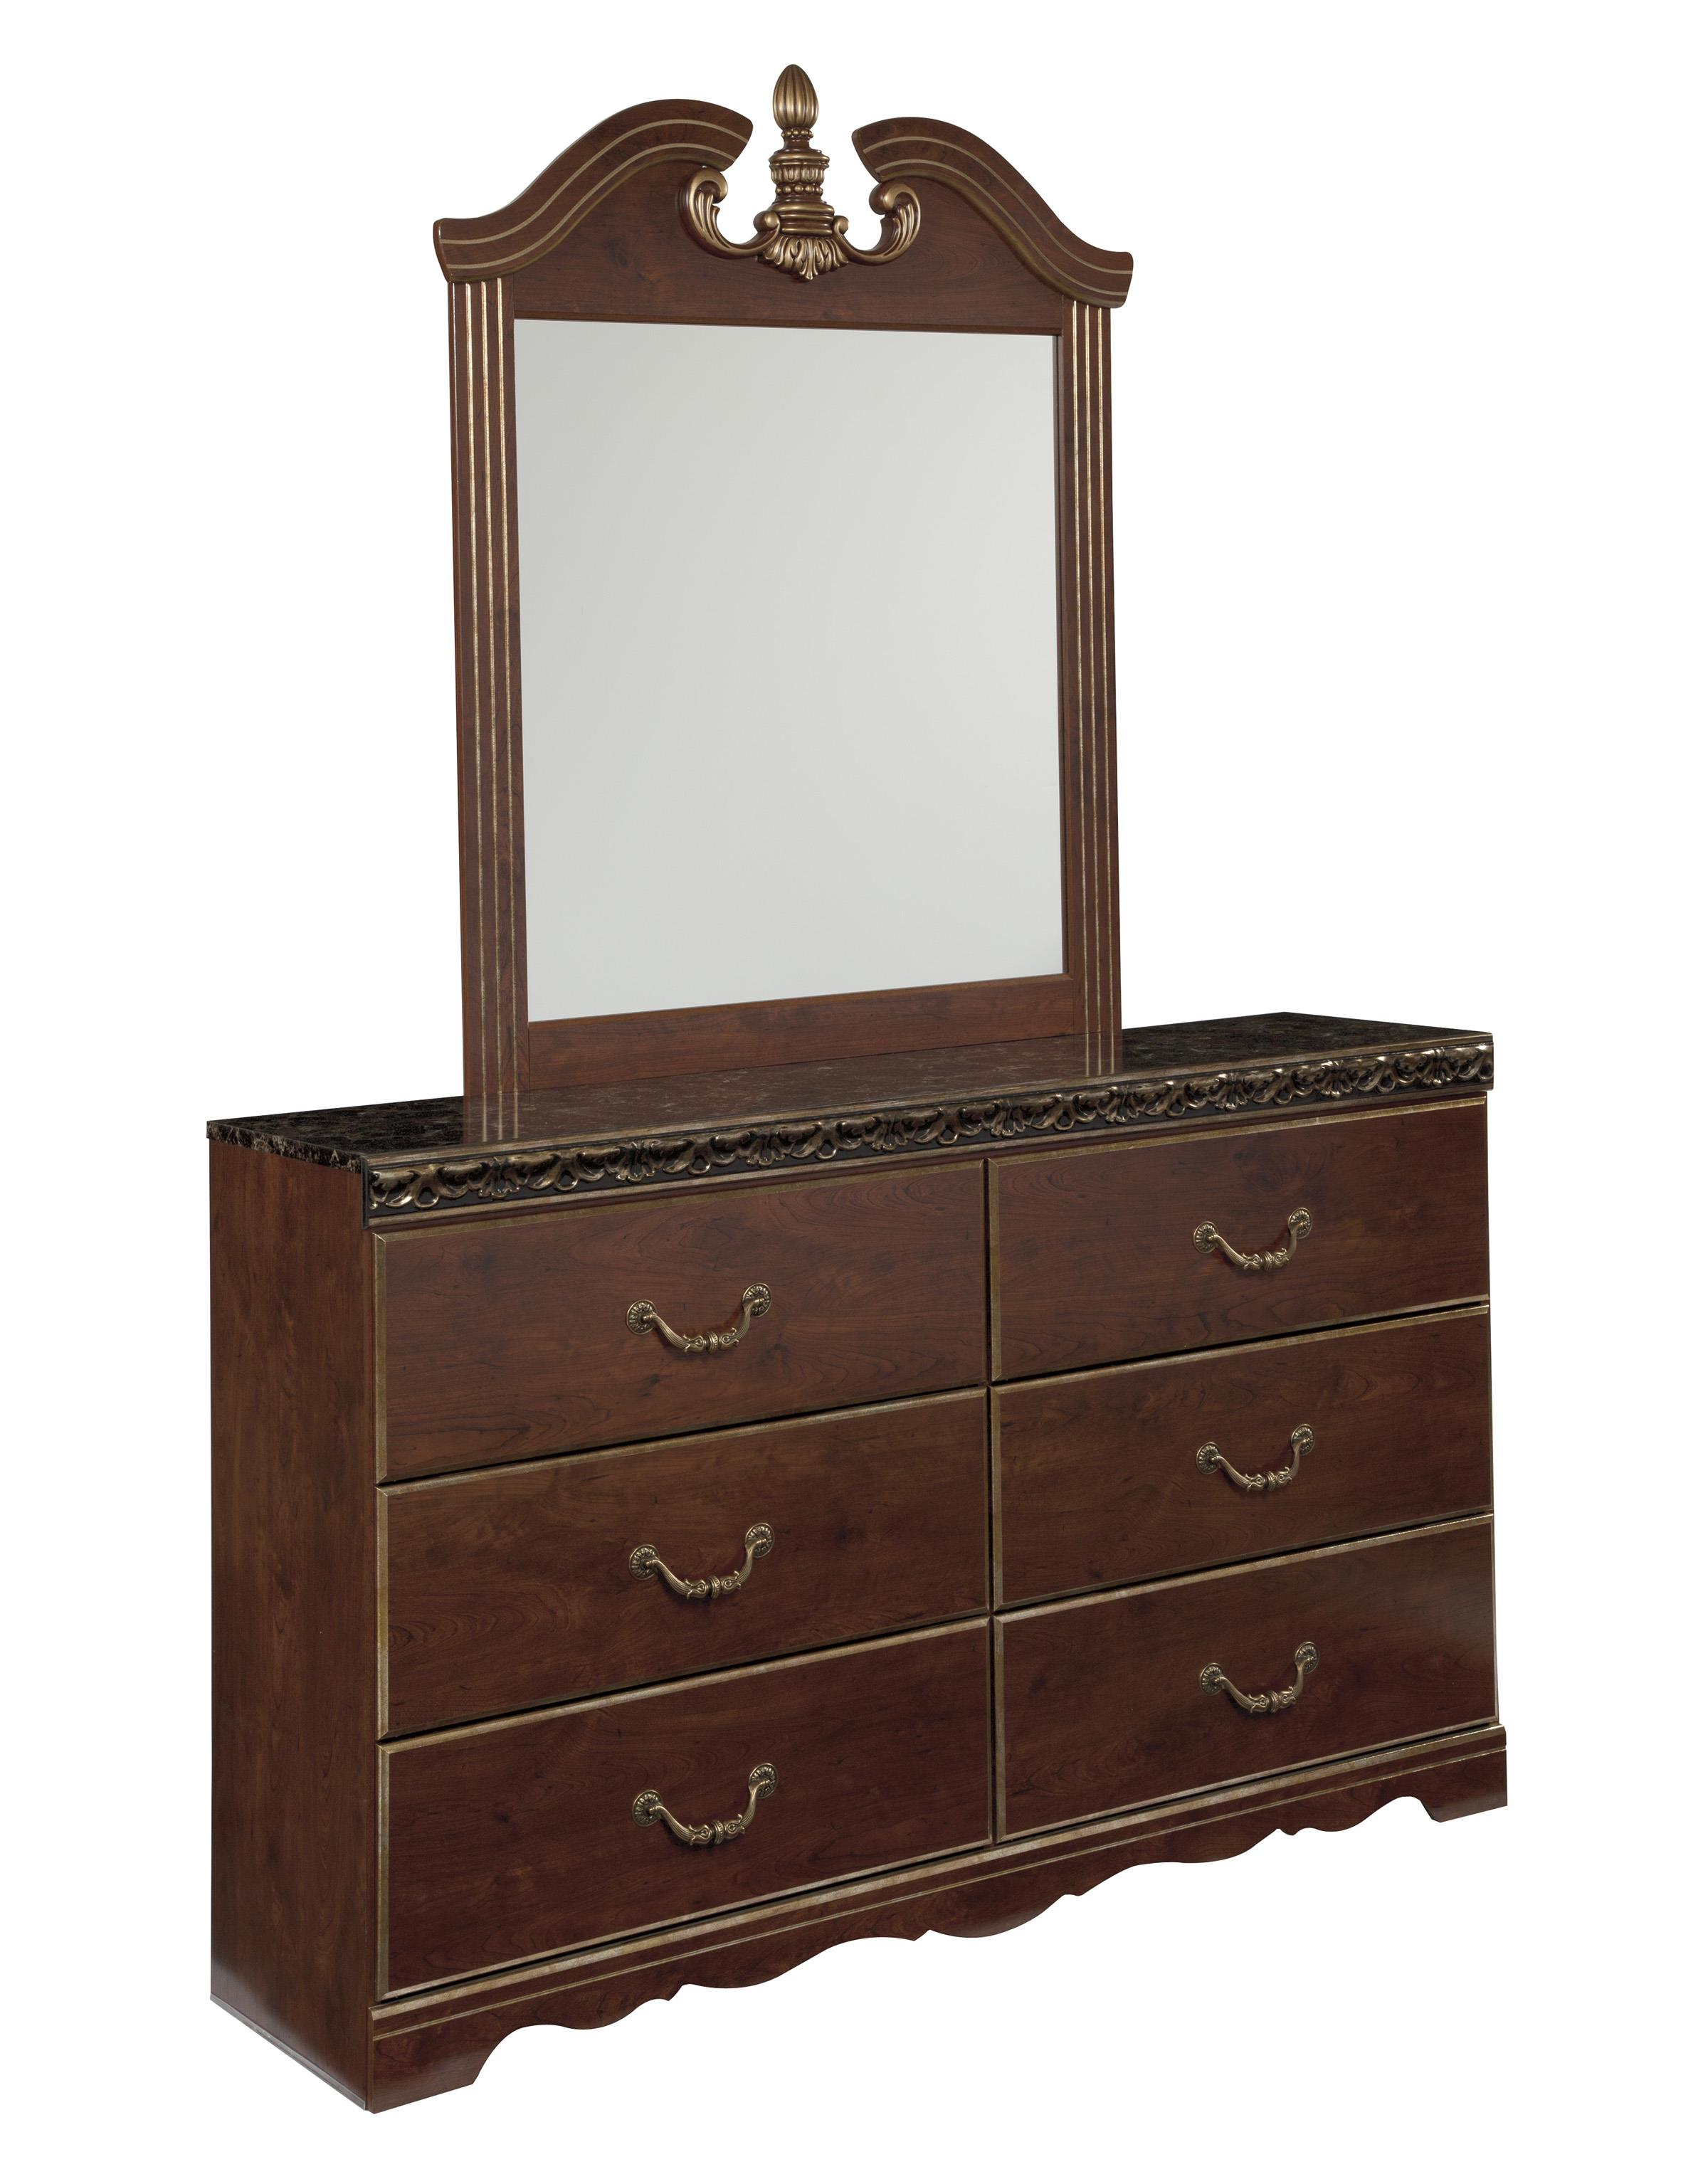 Signature Design by Ashley Naralyn Dresser and Mirror - Item Number: B164-31+36